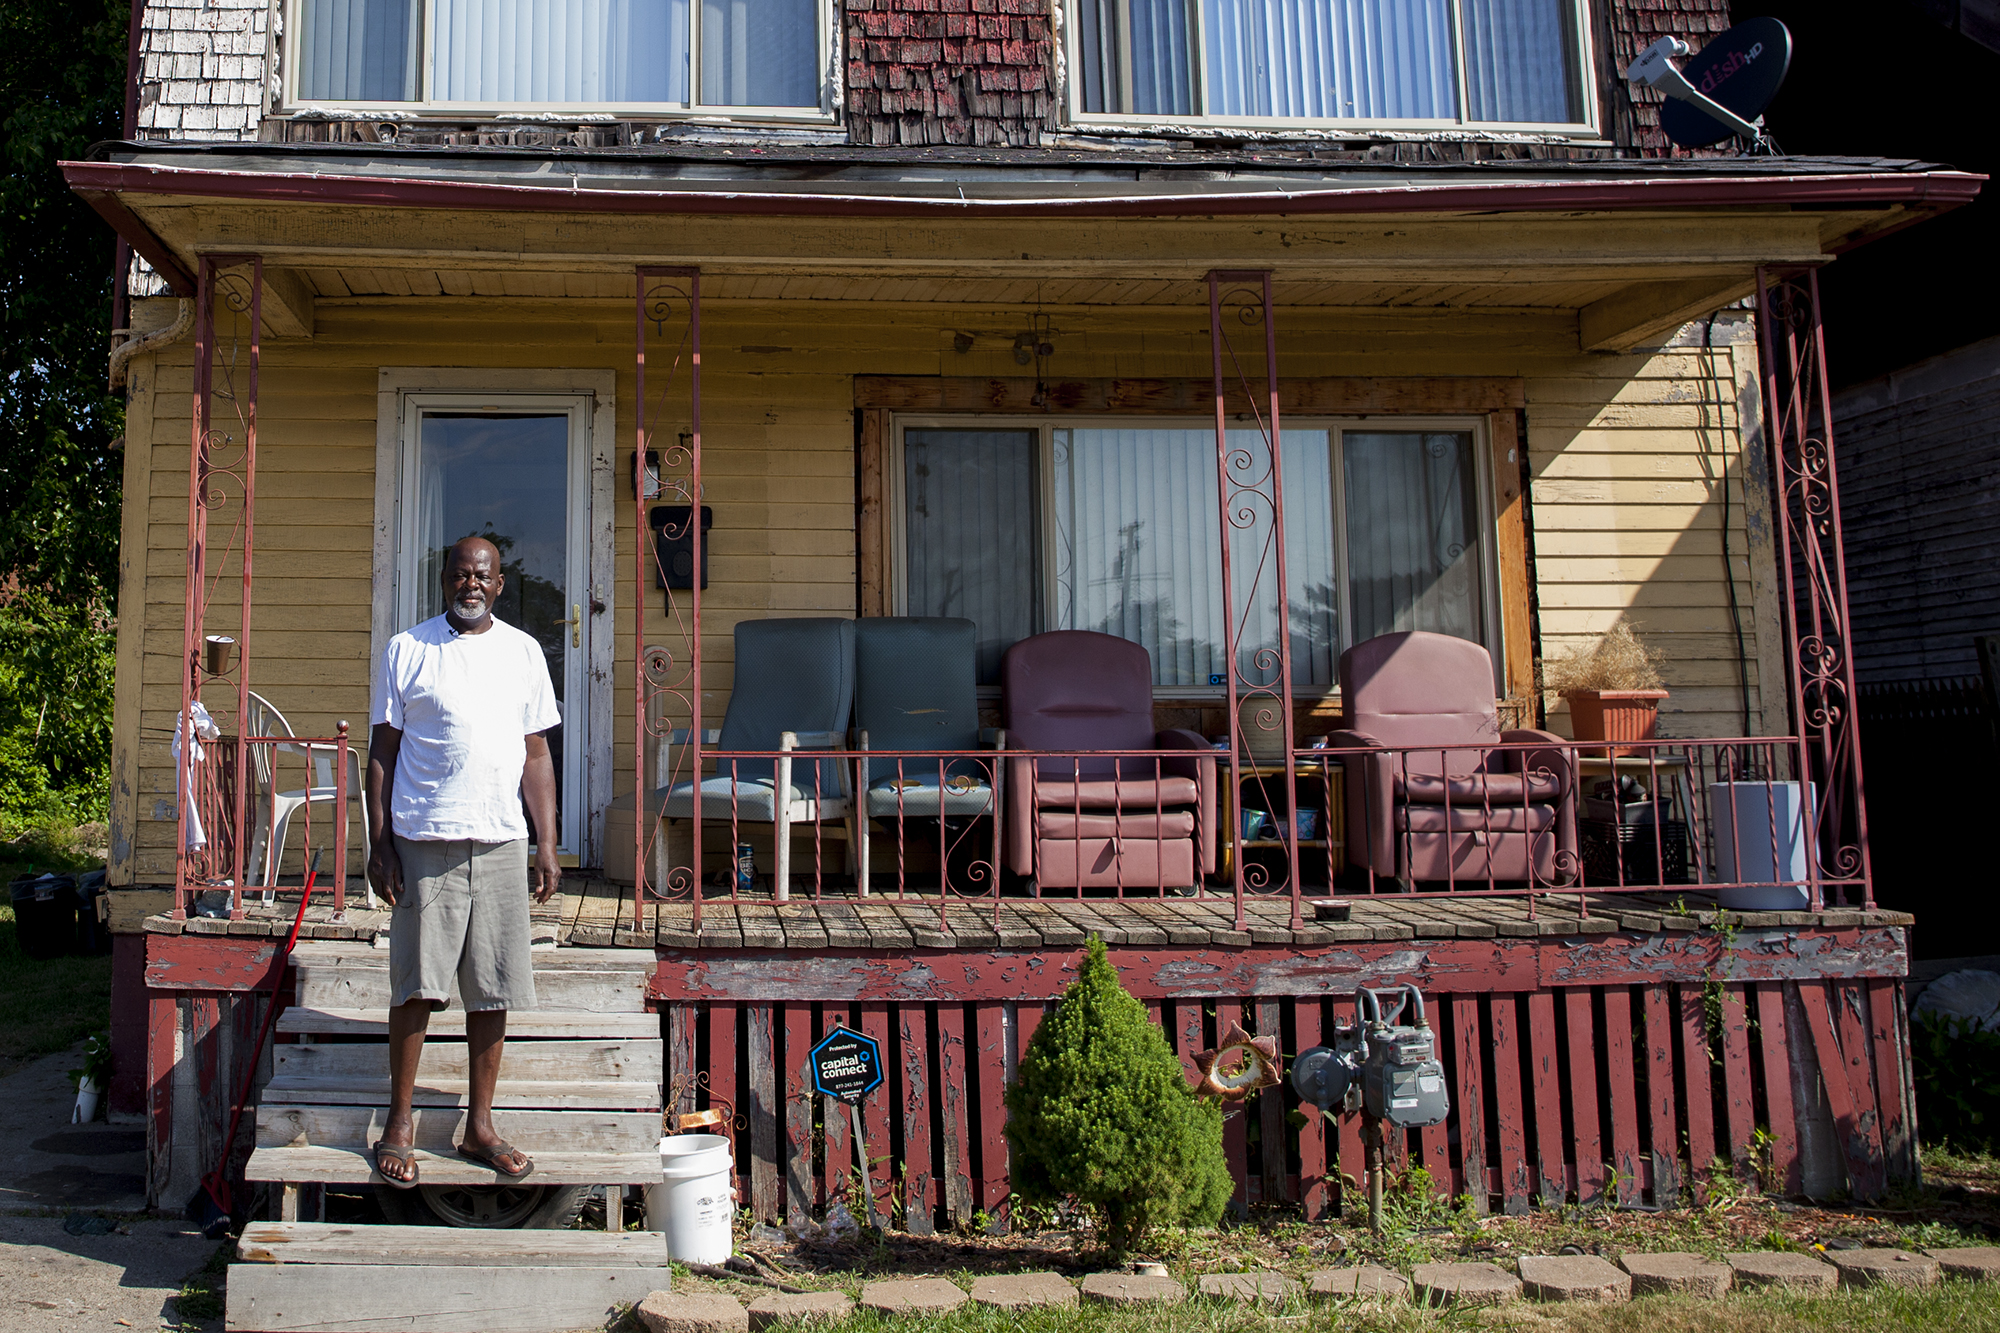 Richard Cooper stands on his front porch in Highland Park, Michigan, across from an empty lot where his elementary school once stood. (Photo by Jeffrey Pierre, audio by Lily Altavena/News21)